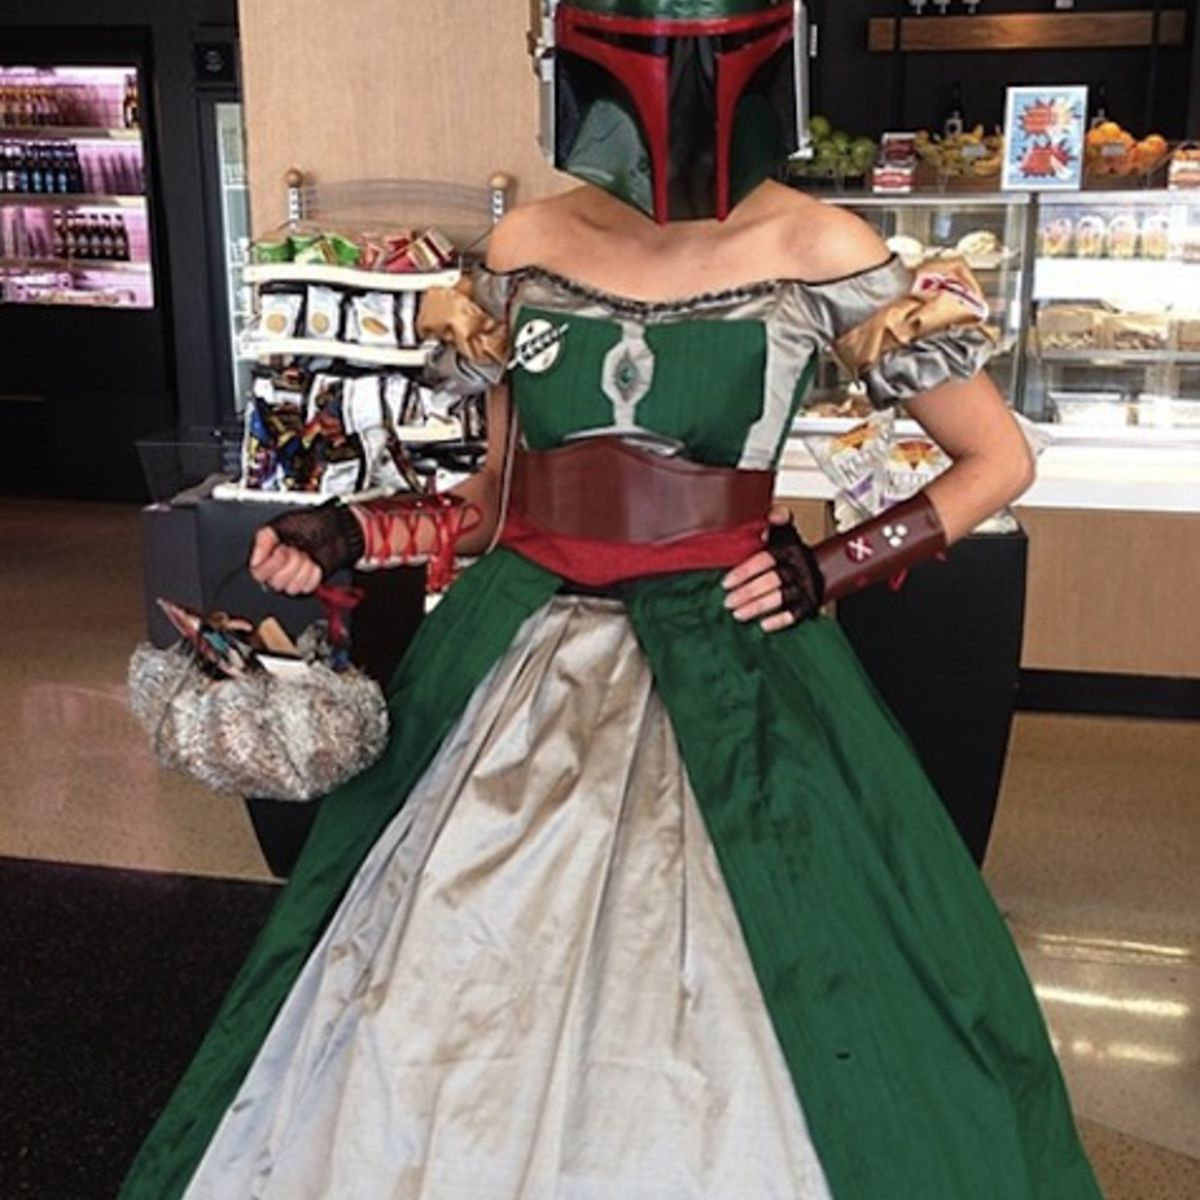 ball-gown-boba-fett.jpg